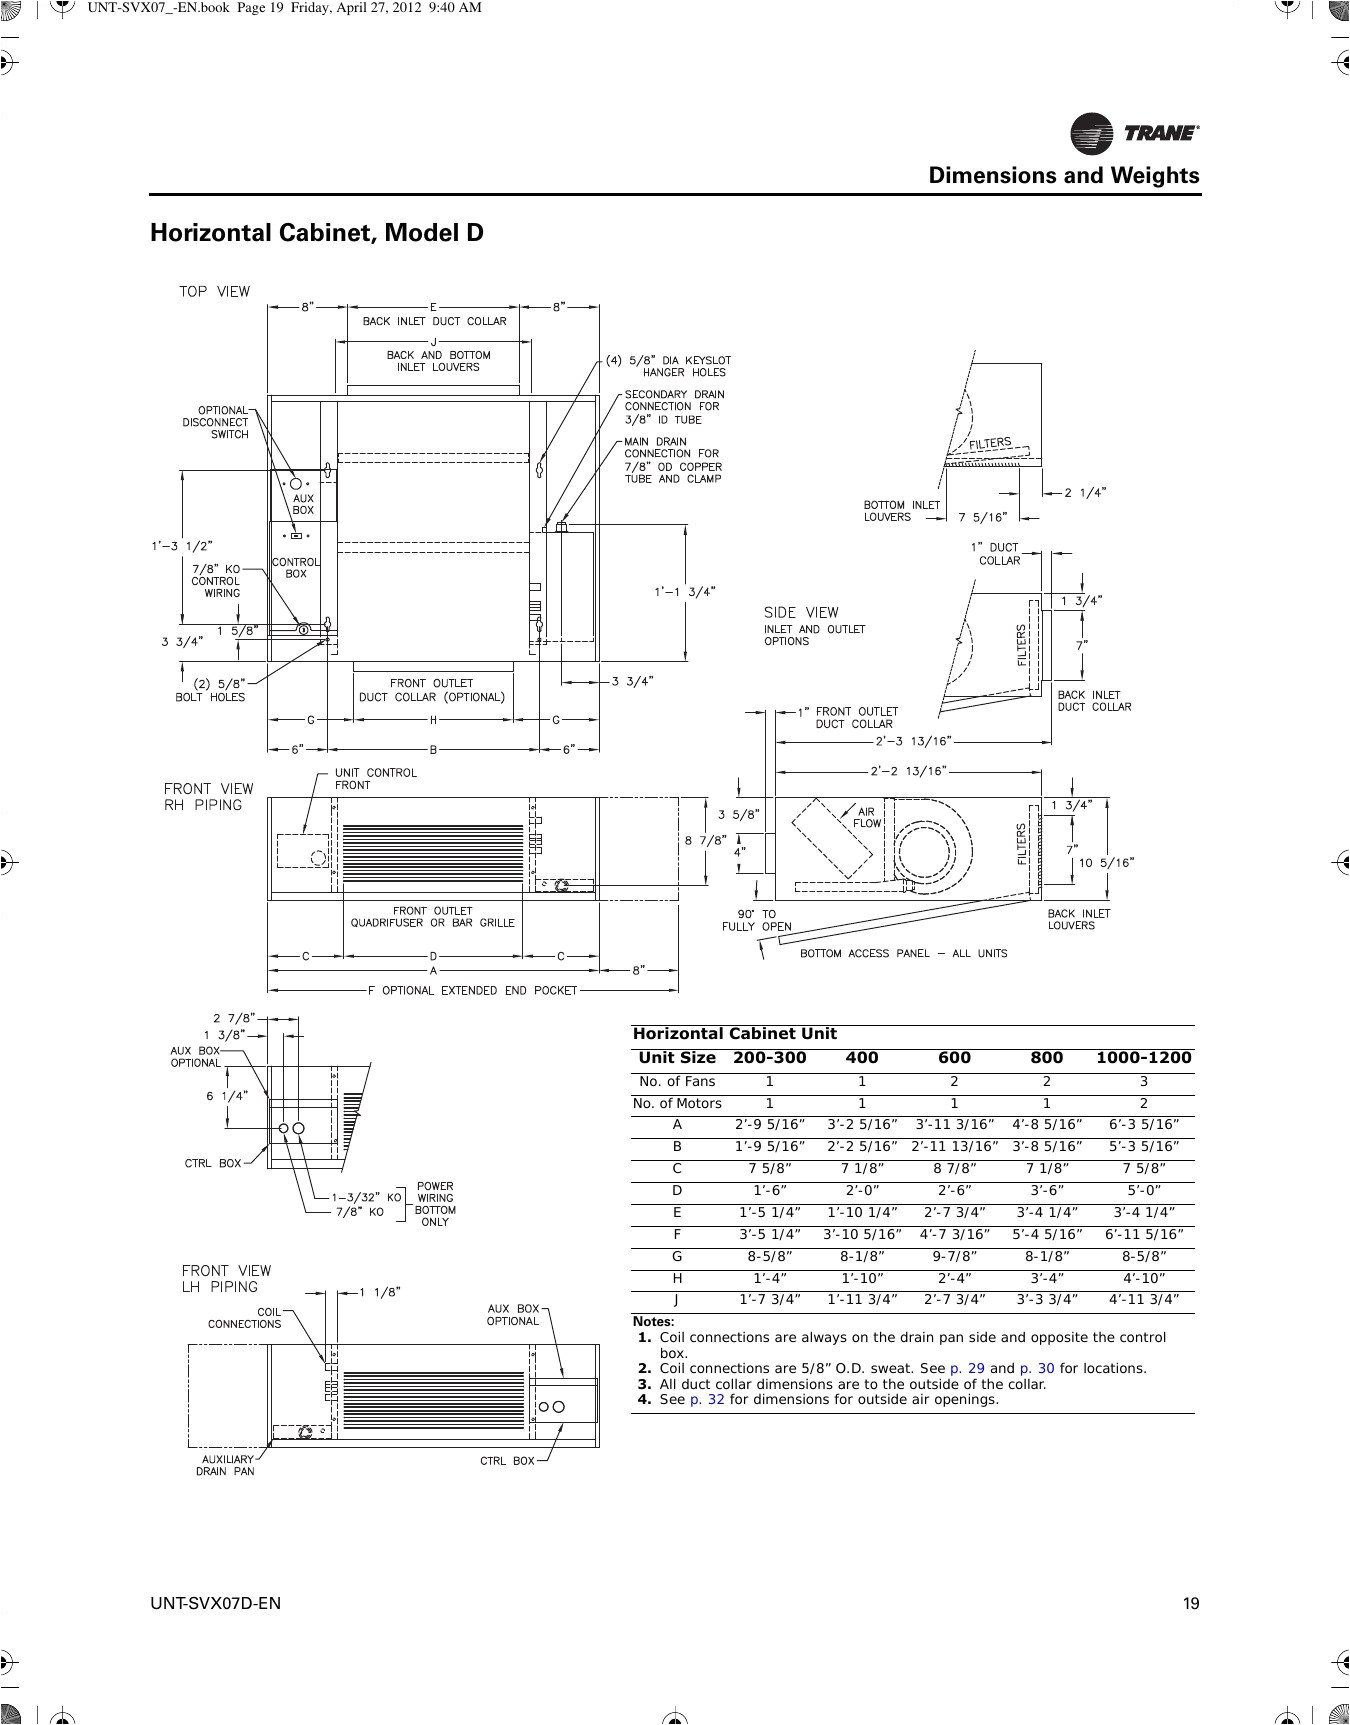 lux 500 thermostat wiring diagram elegant luxpro thermostat wiring lux 500 thermostat wiring diagram